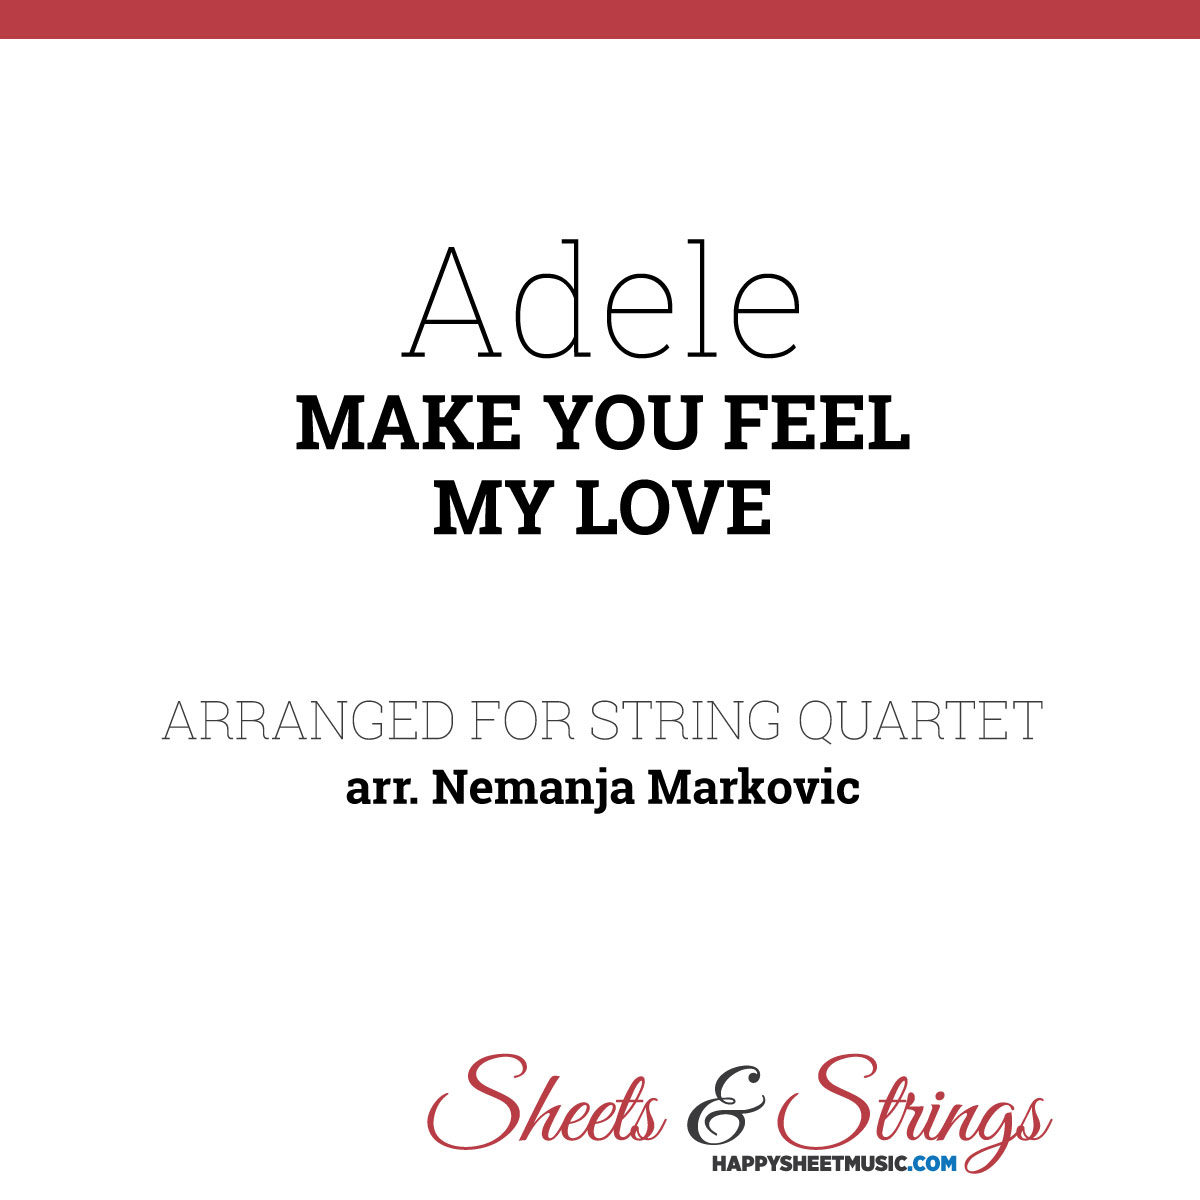 Adele - Make You Feel My Love - Sheet Music for String Quartet - Music Arrangement for String Quartet